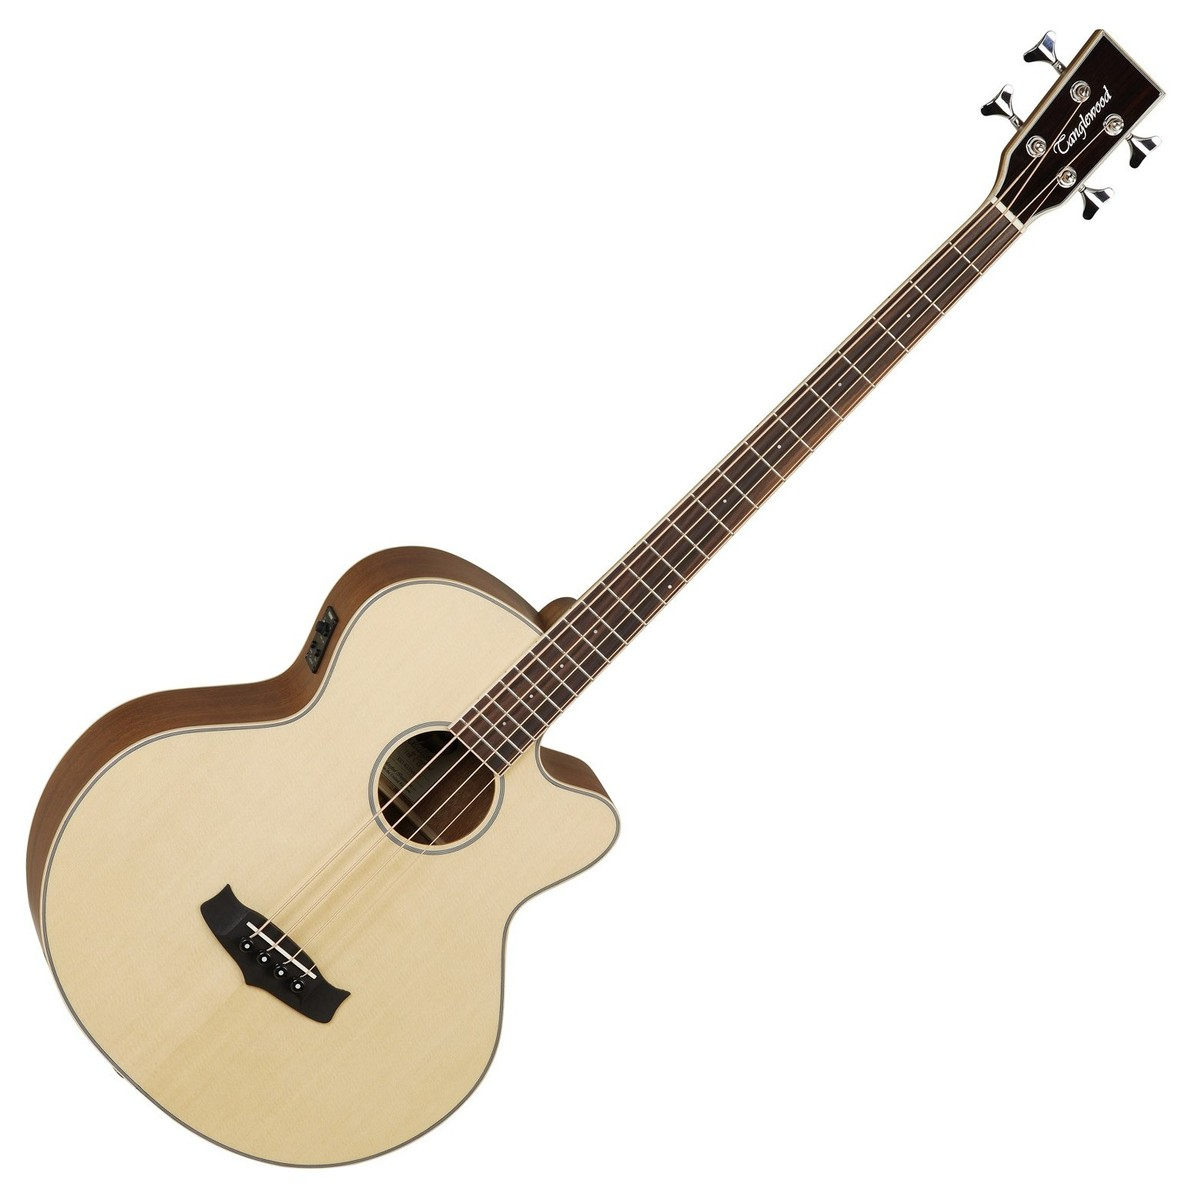 Any opinions on this Acoustic Bass Guitar? | TalkBass.com